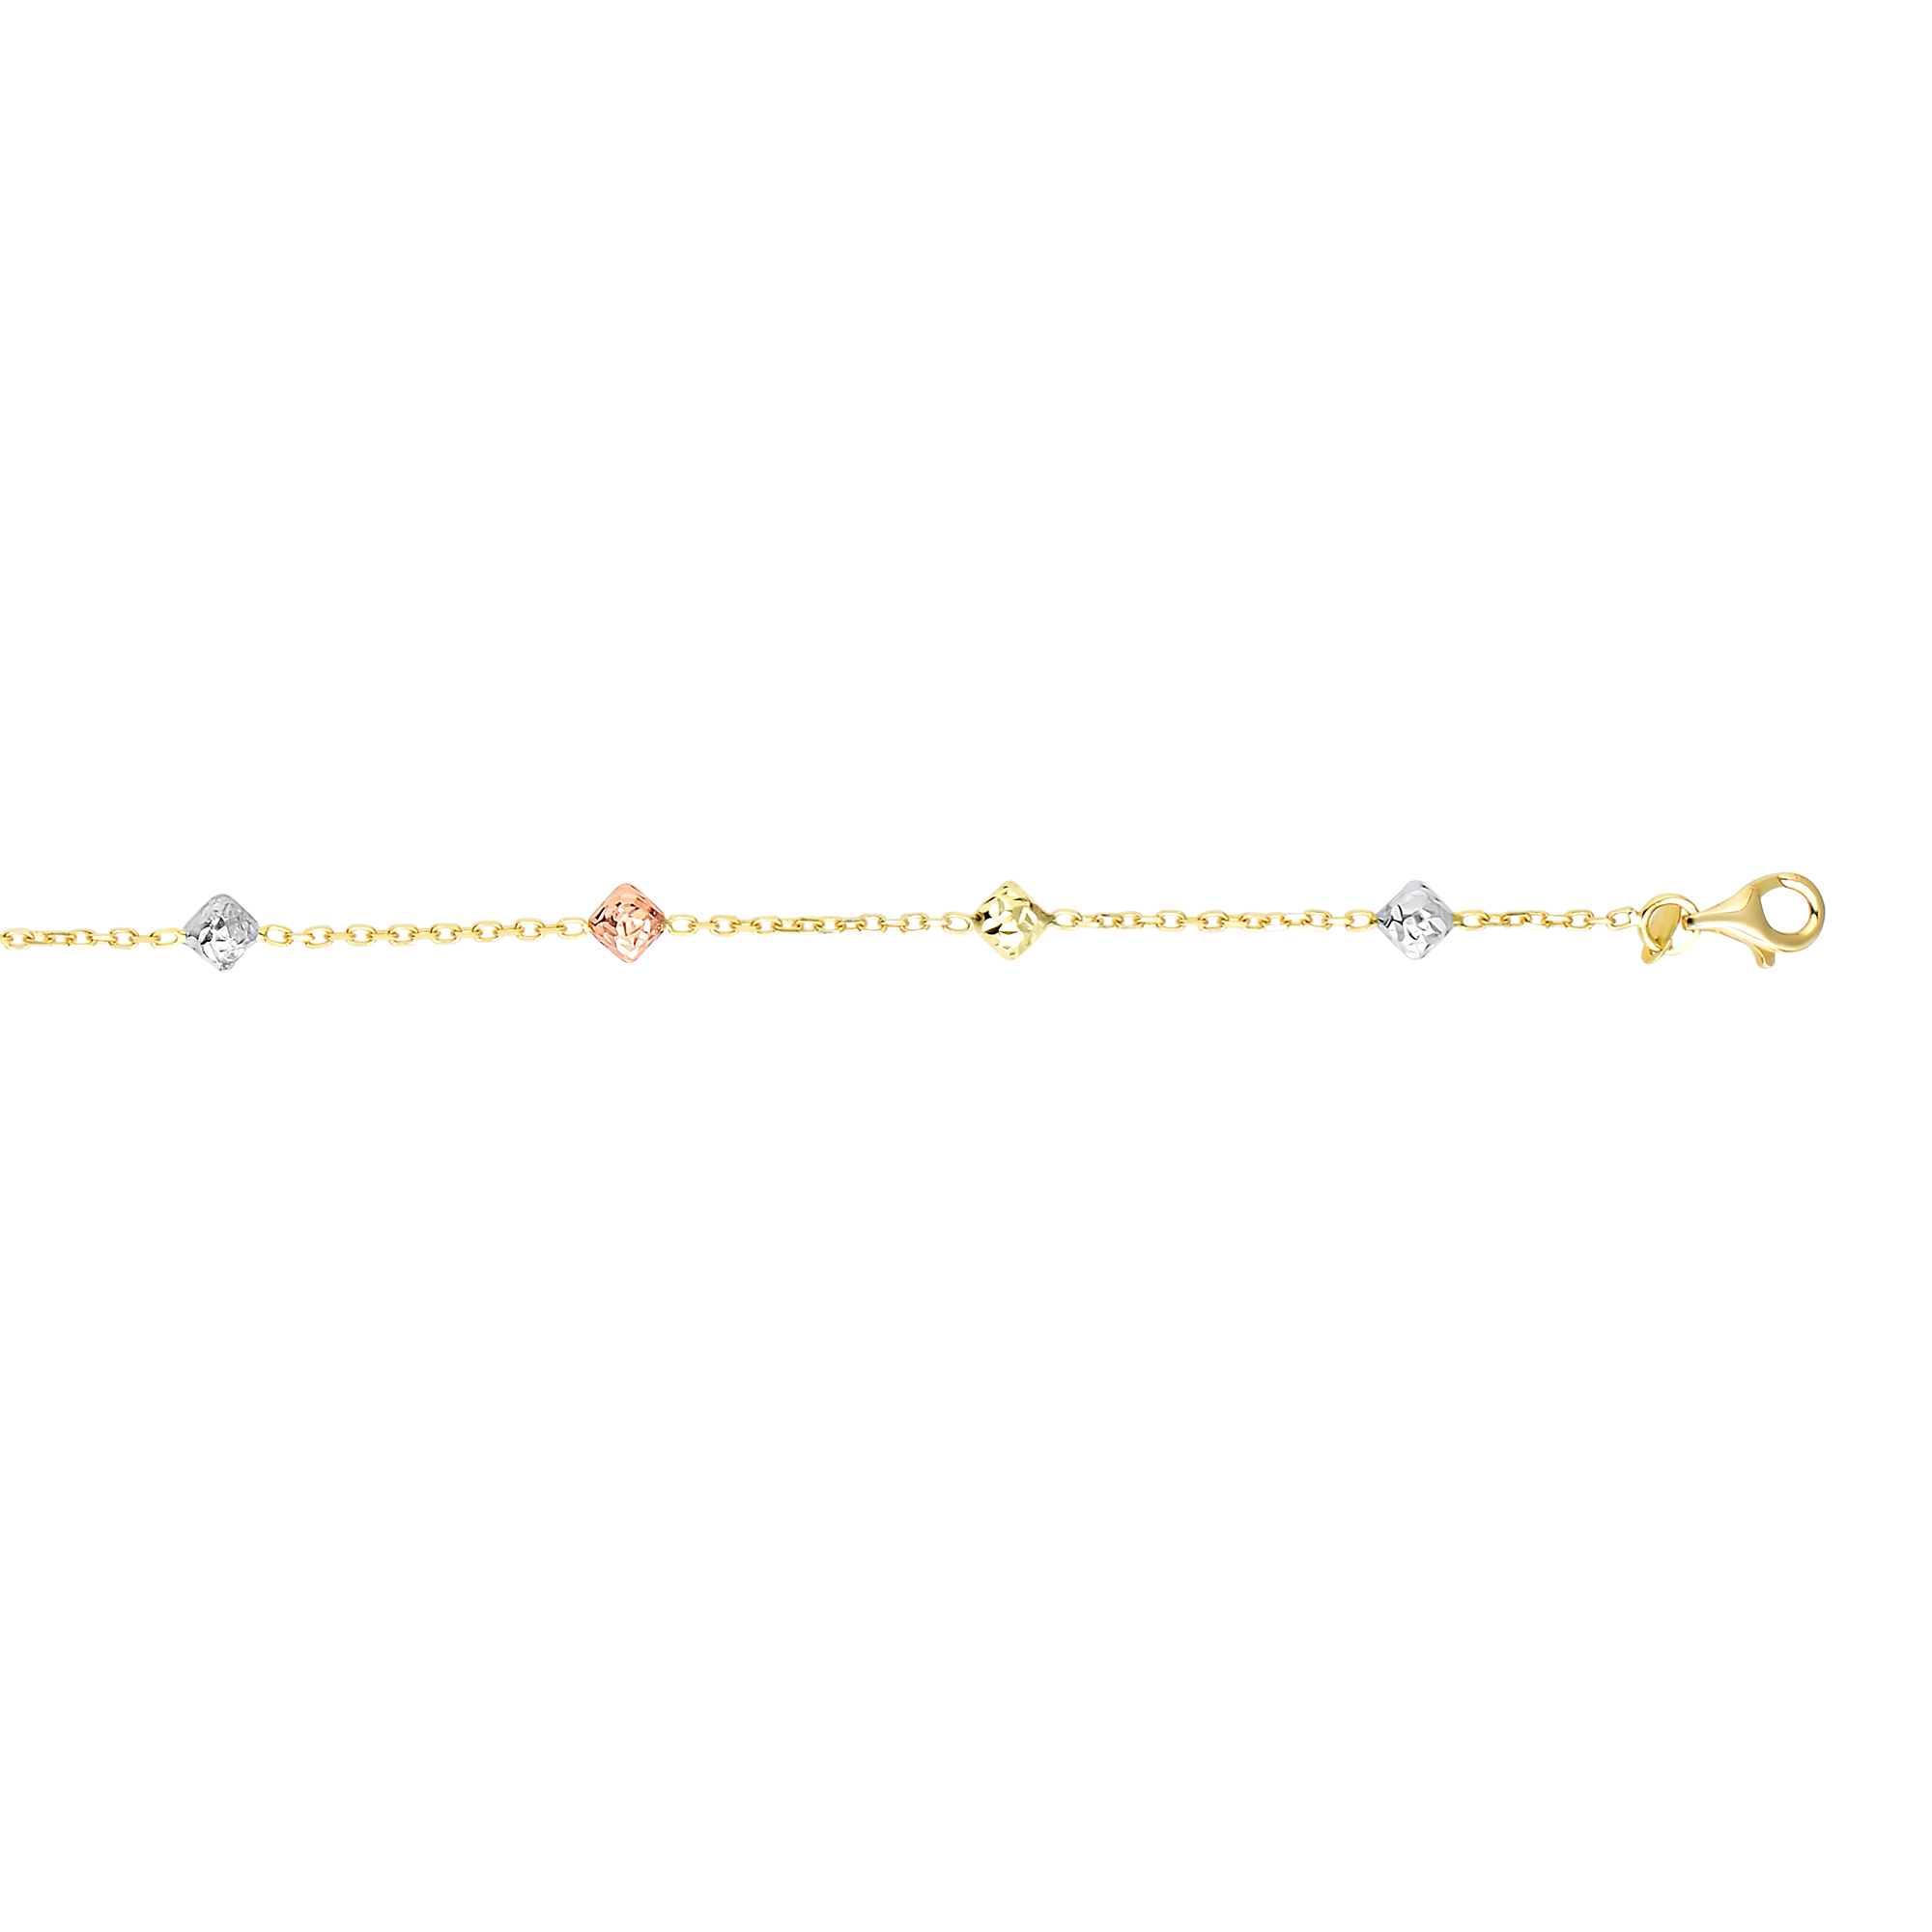 14kt 18 inches Yellow+Rose+White Gold 4.6mm Diamond Cut Diamond Shape Tri-Color Bead On 1.3mm Yellow Ca ble Chain Necklace with Lobster Clasp